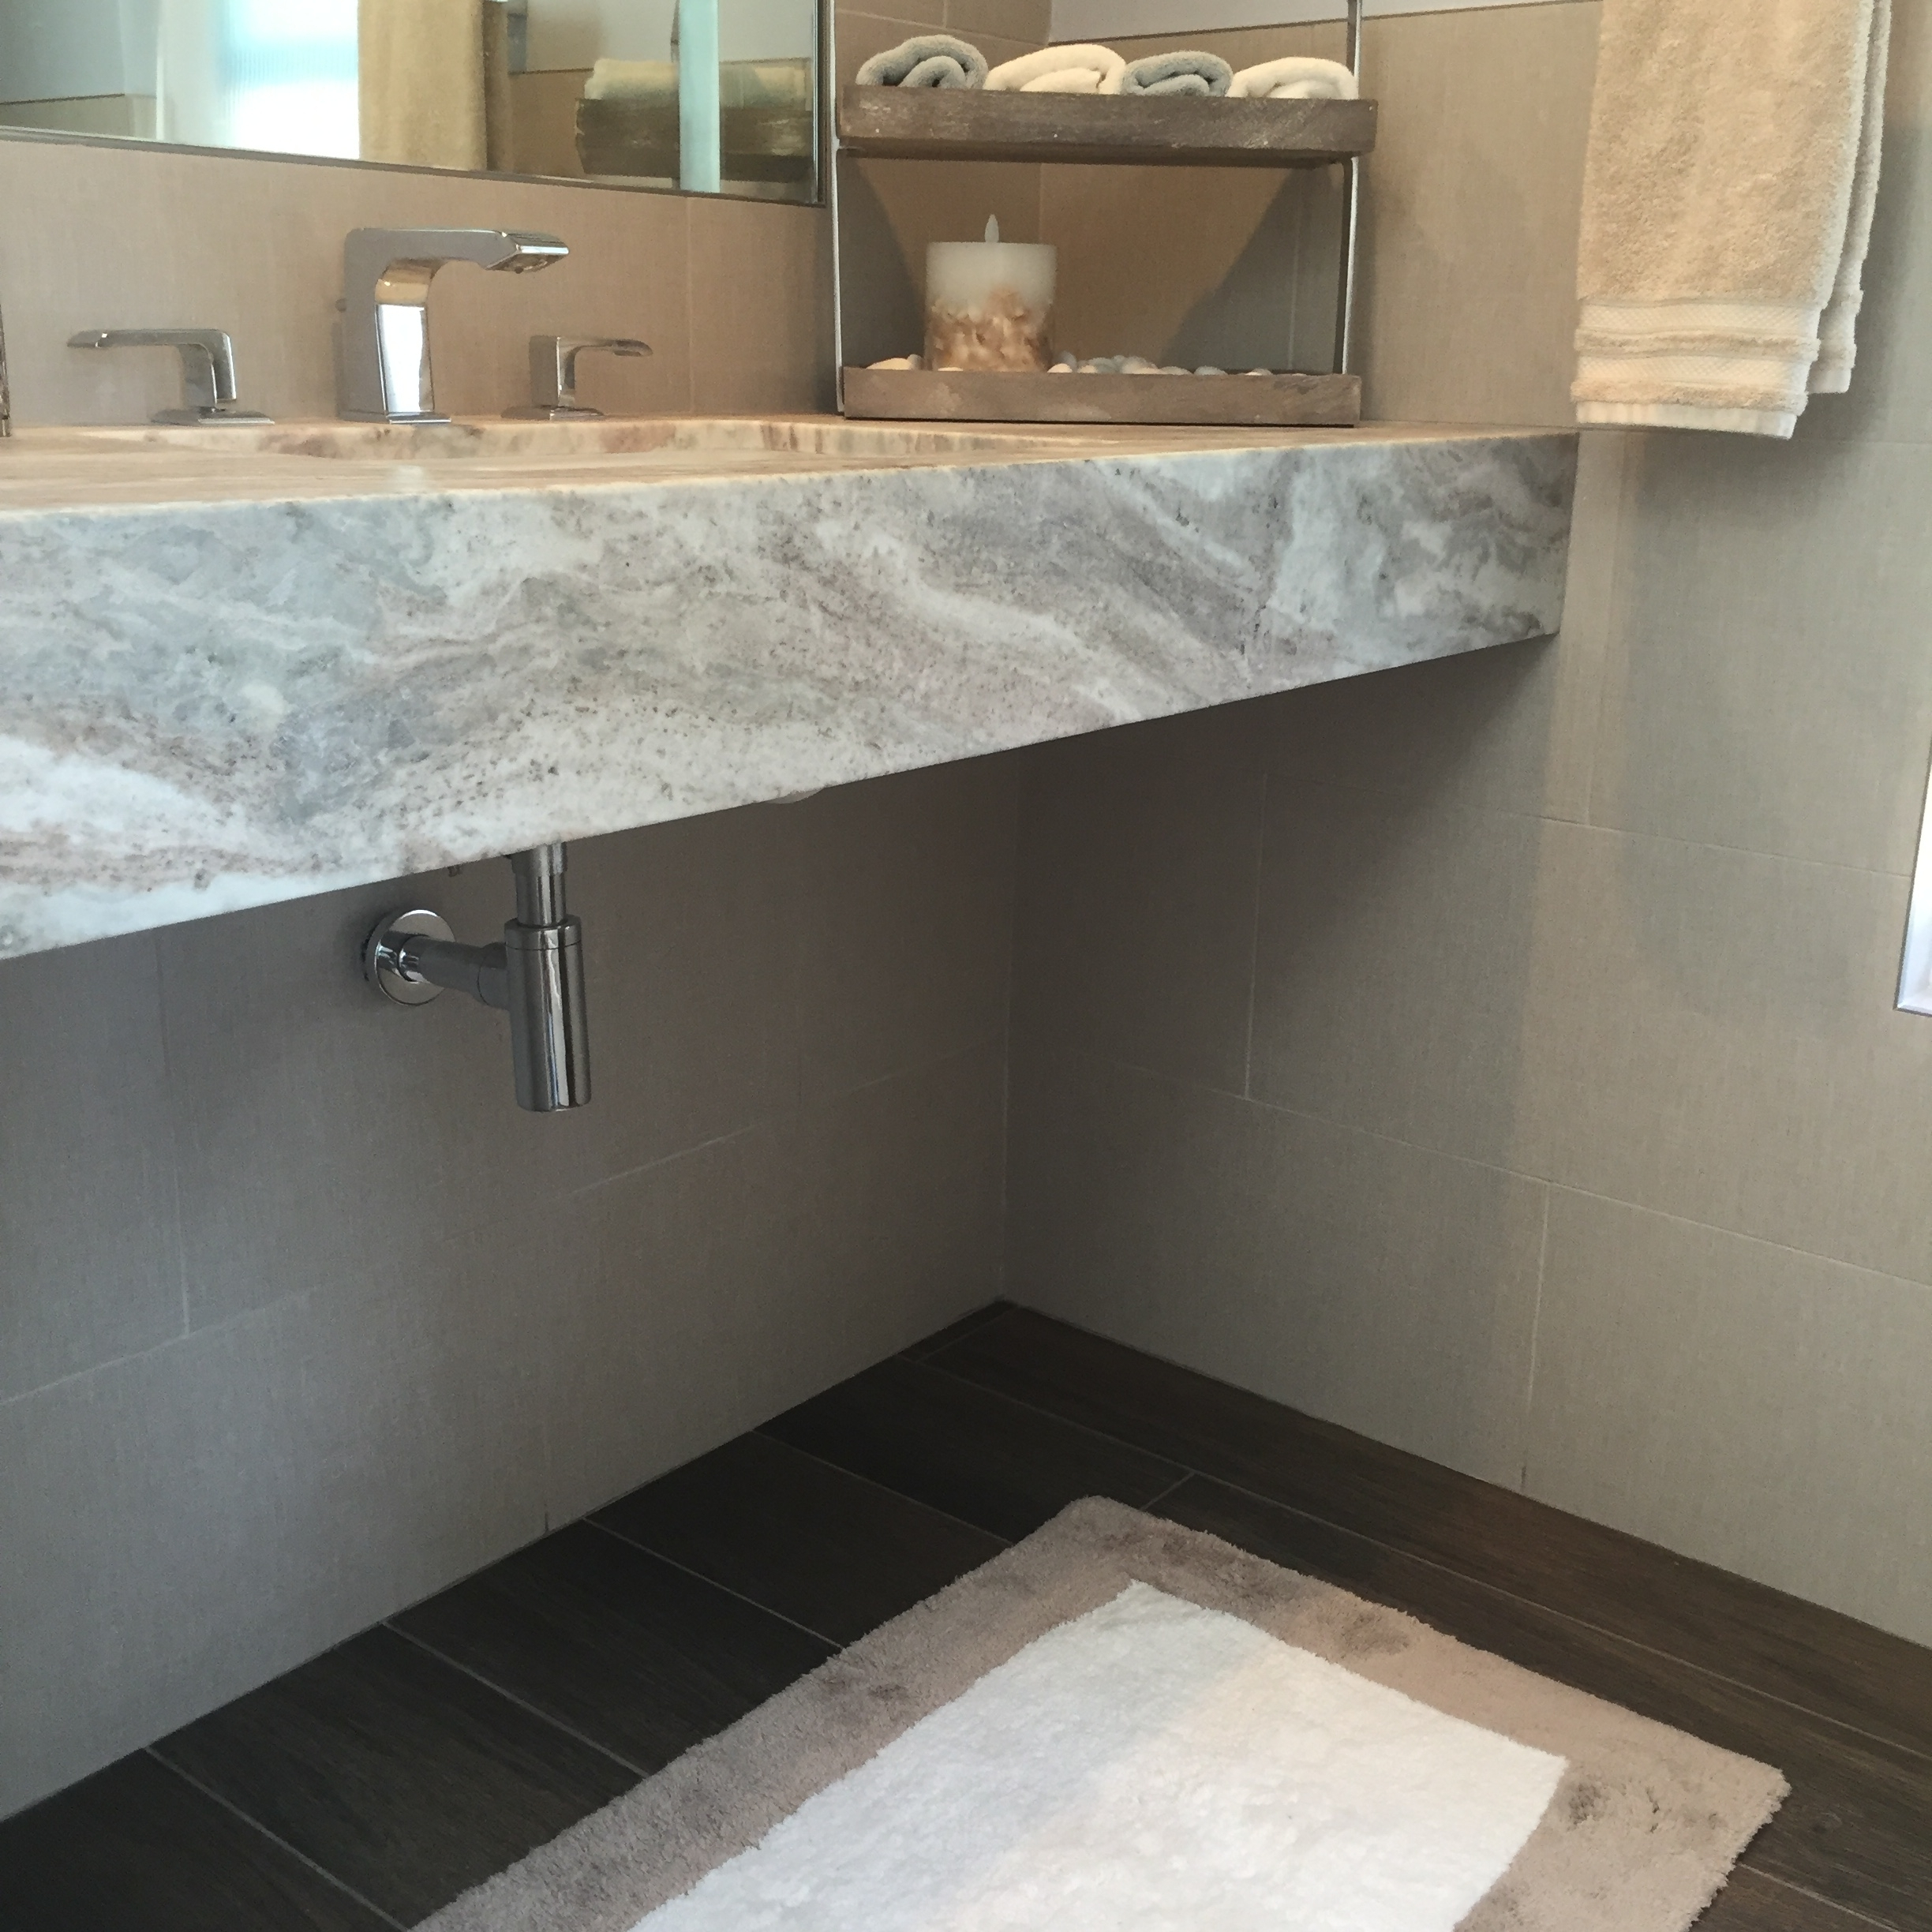 bathroom of pinterest inspirational on elegant by fiore look kathi wood pin tile